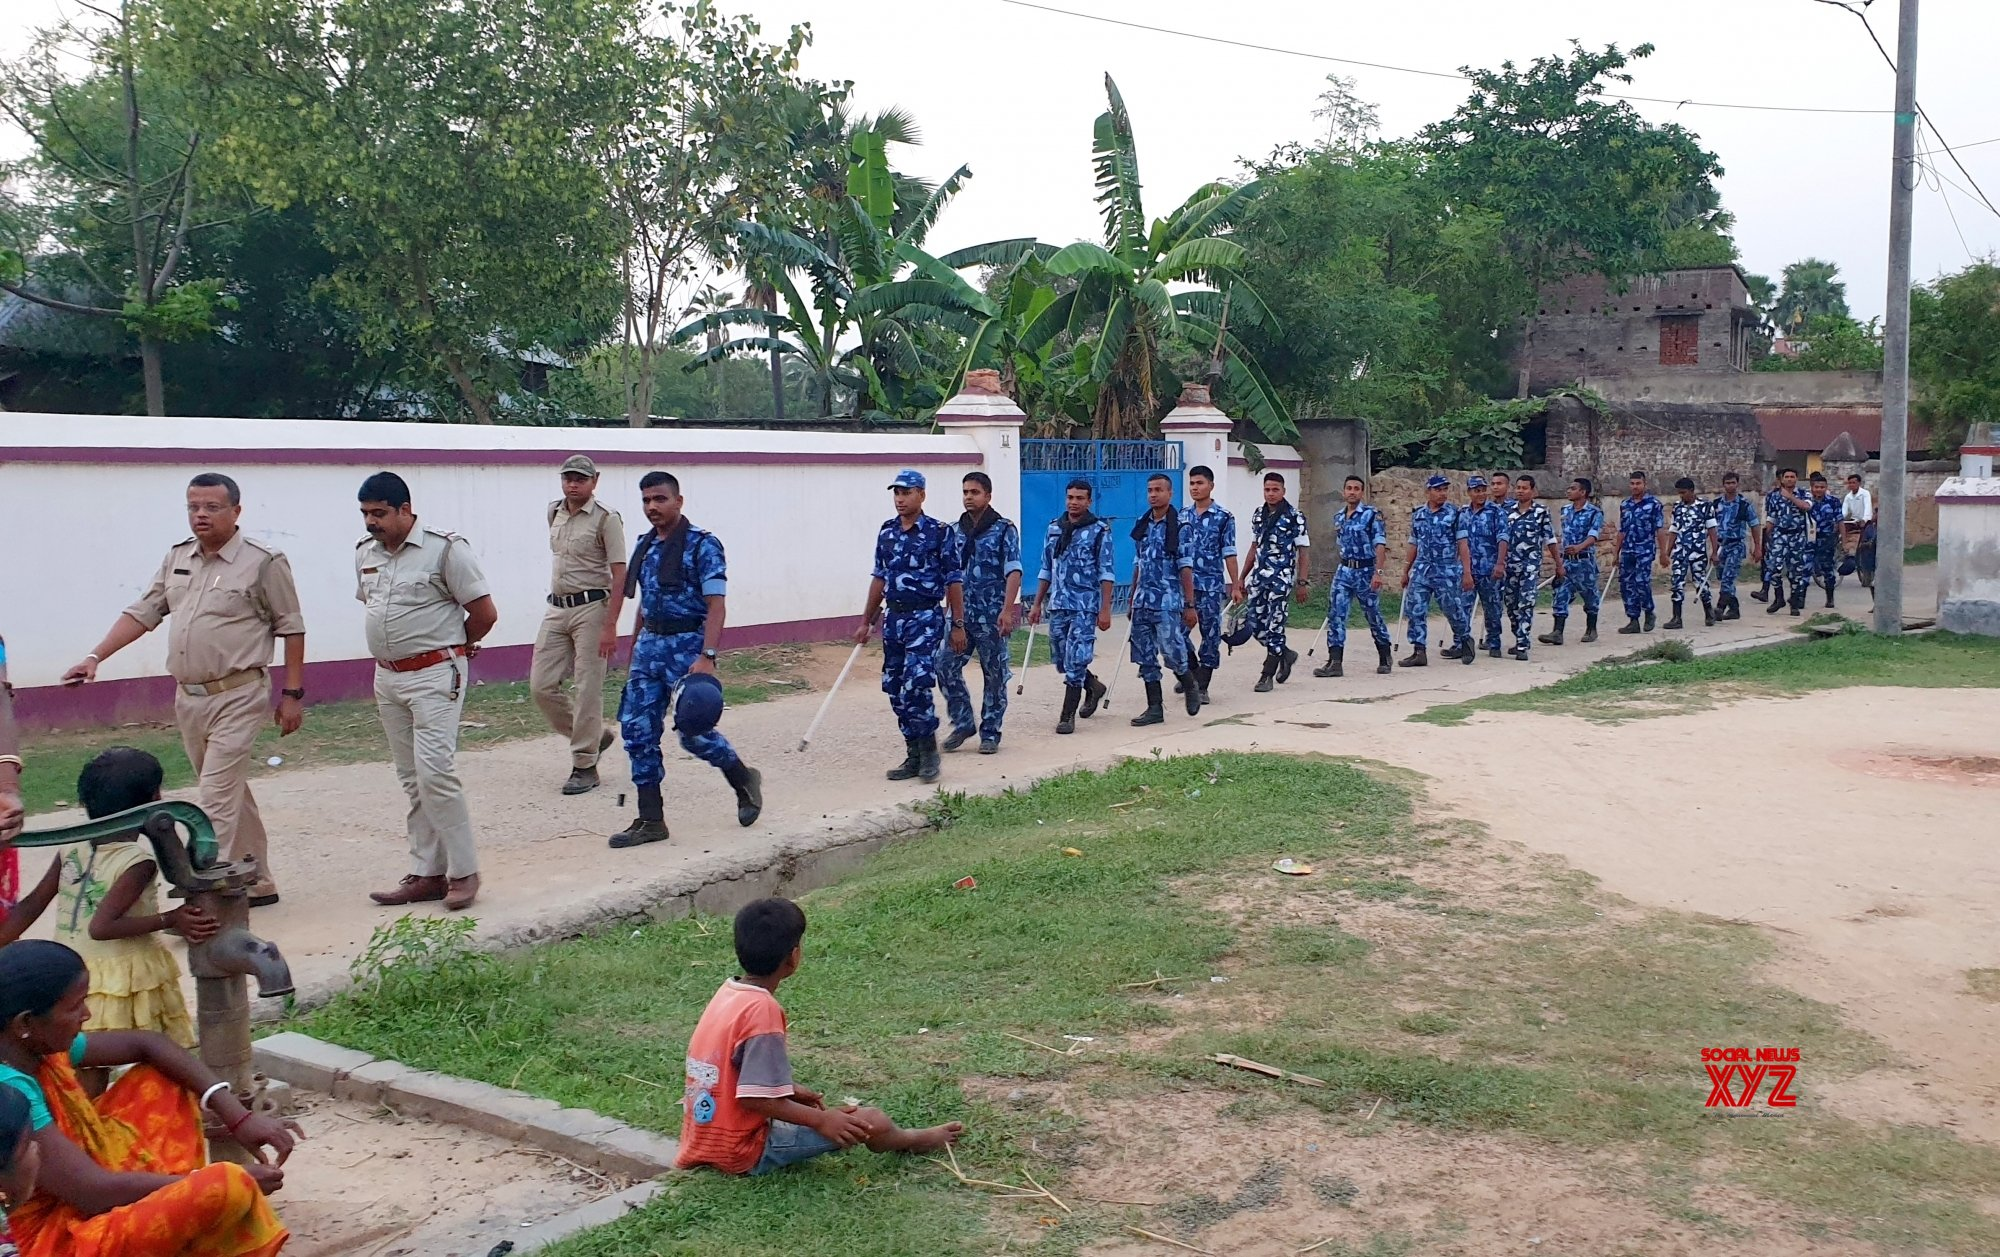 Birbhum (West Bengal): 2019 Lok Sabha elections - Police, RAF conduct route march #Gallery